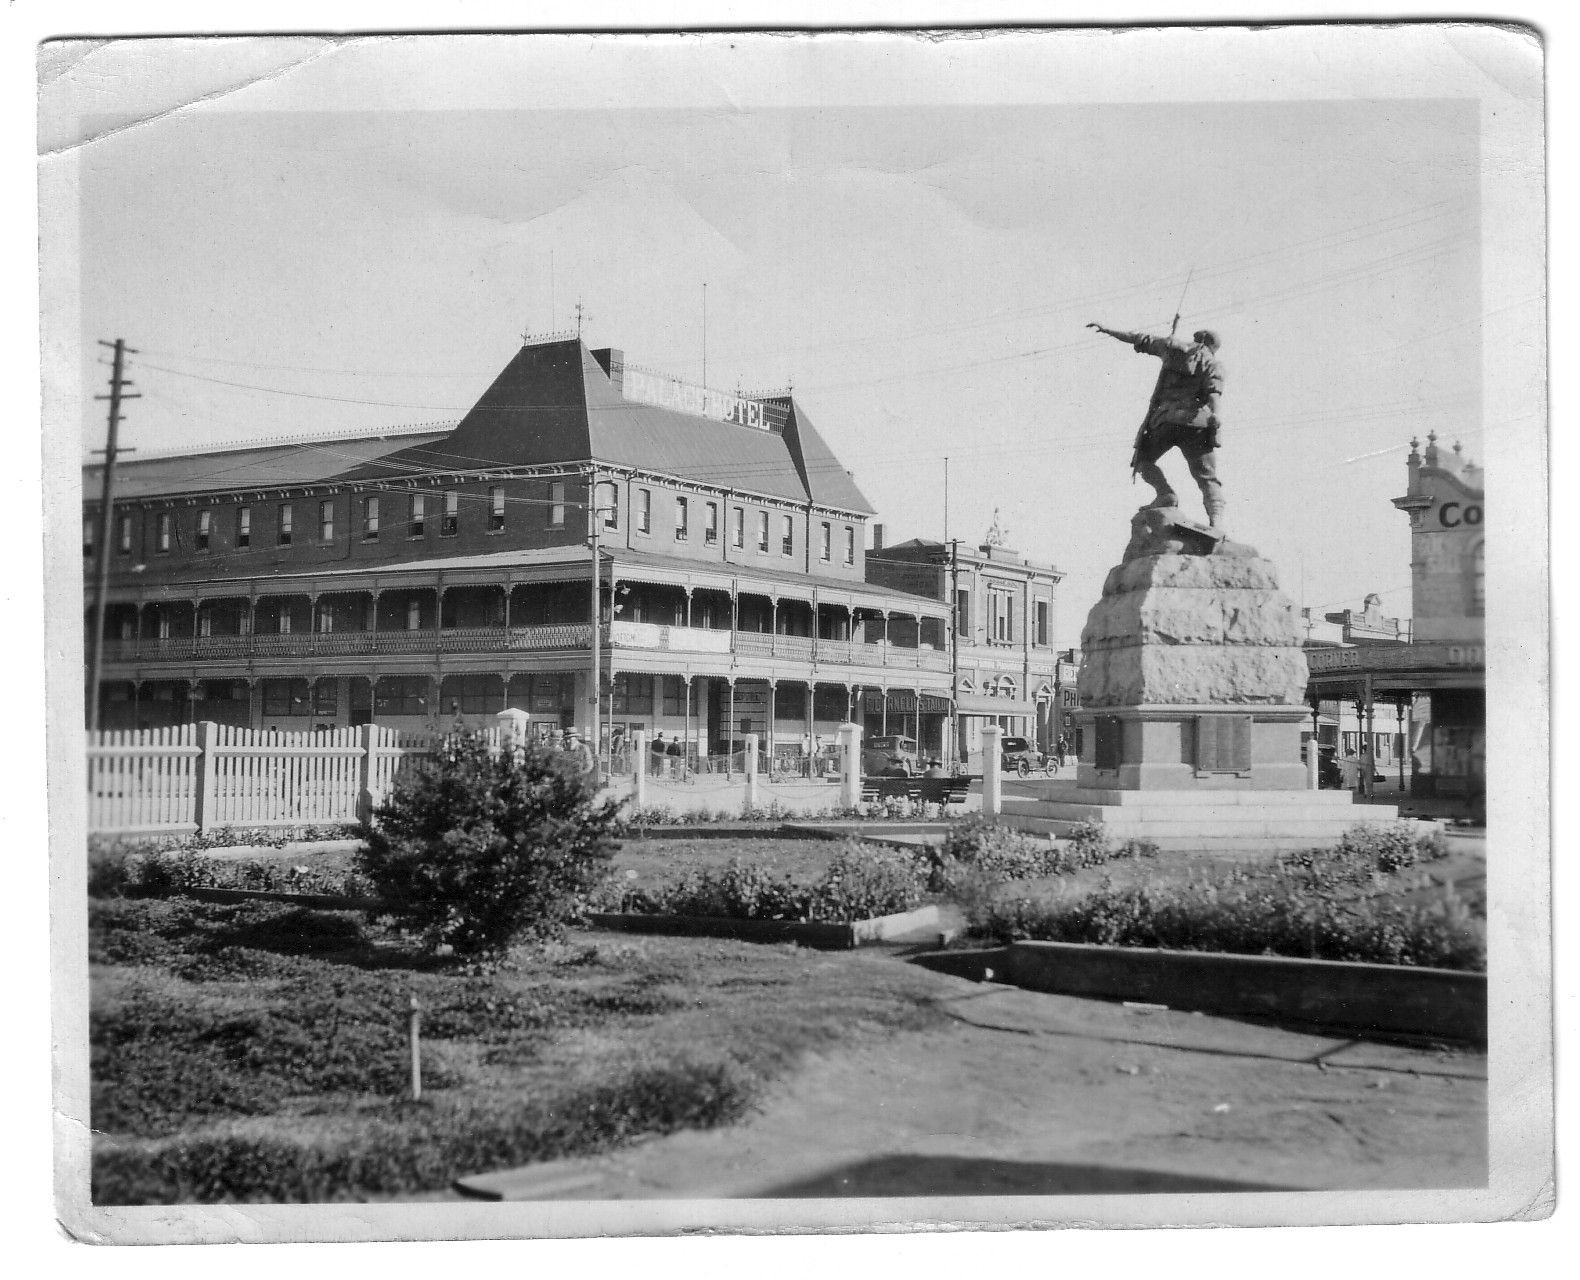 The Palace Hotel, 1925